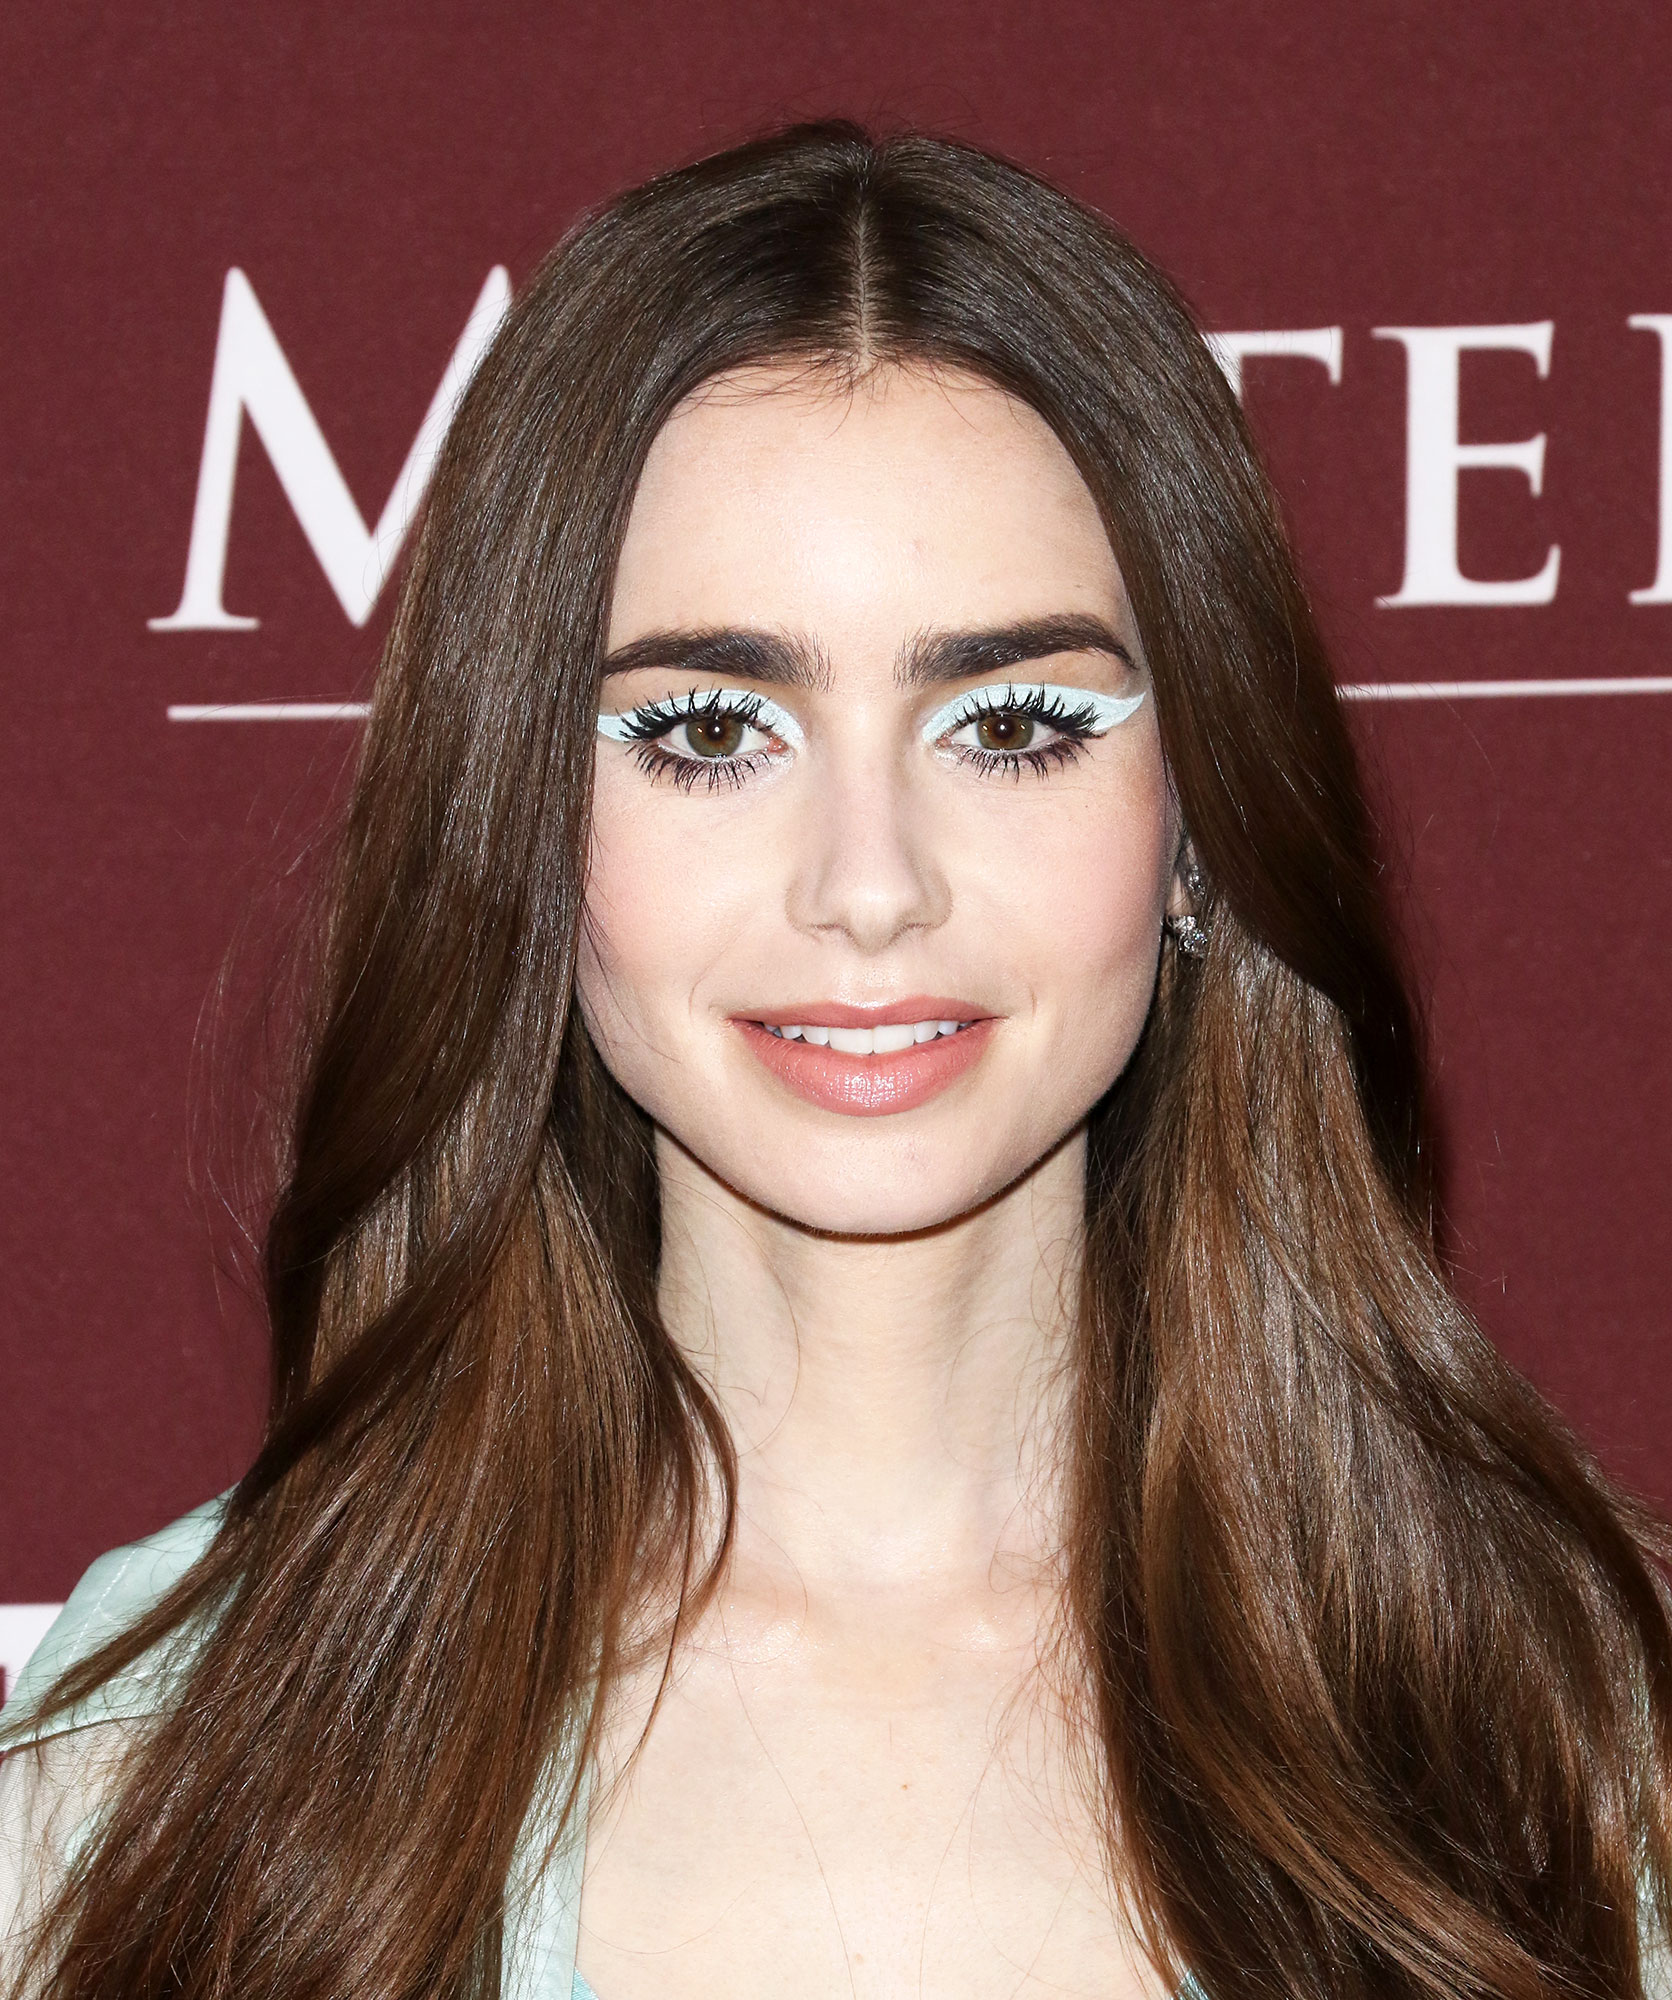 Lily Collins' Abstract Cat Eye - Having fun with color and proportion, makeup artist Vincent Oquendo created a graphic icy blue-winged look for the actress at the Les Miserables premiere on Monday, April 8. #ProTip: match your liner to your outfit for an unexpected take on spring's monochrome trend.